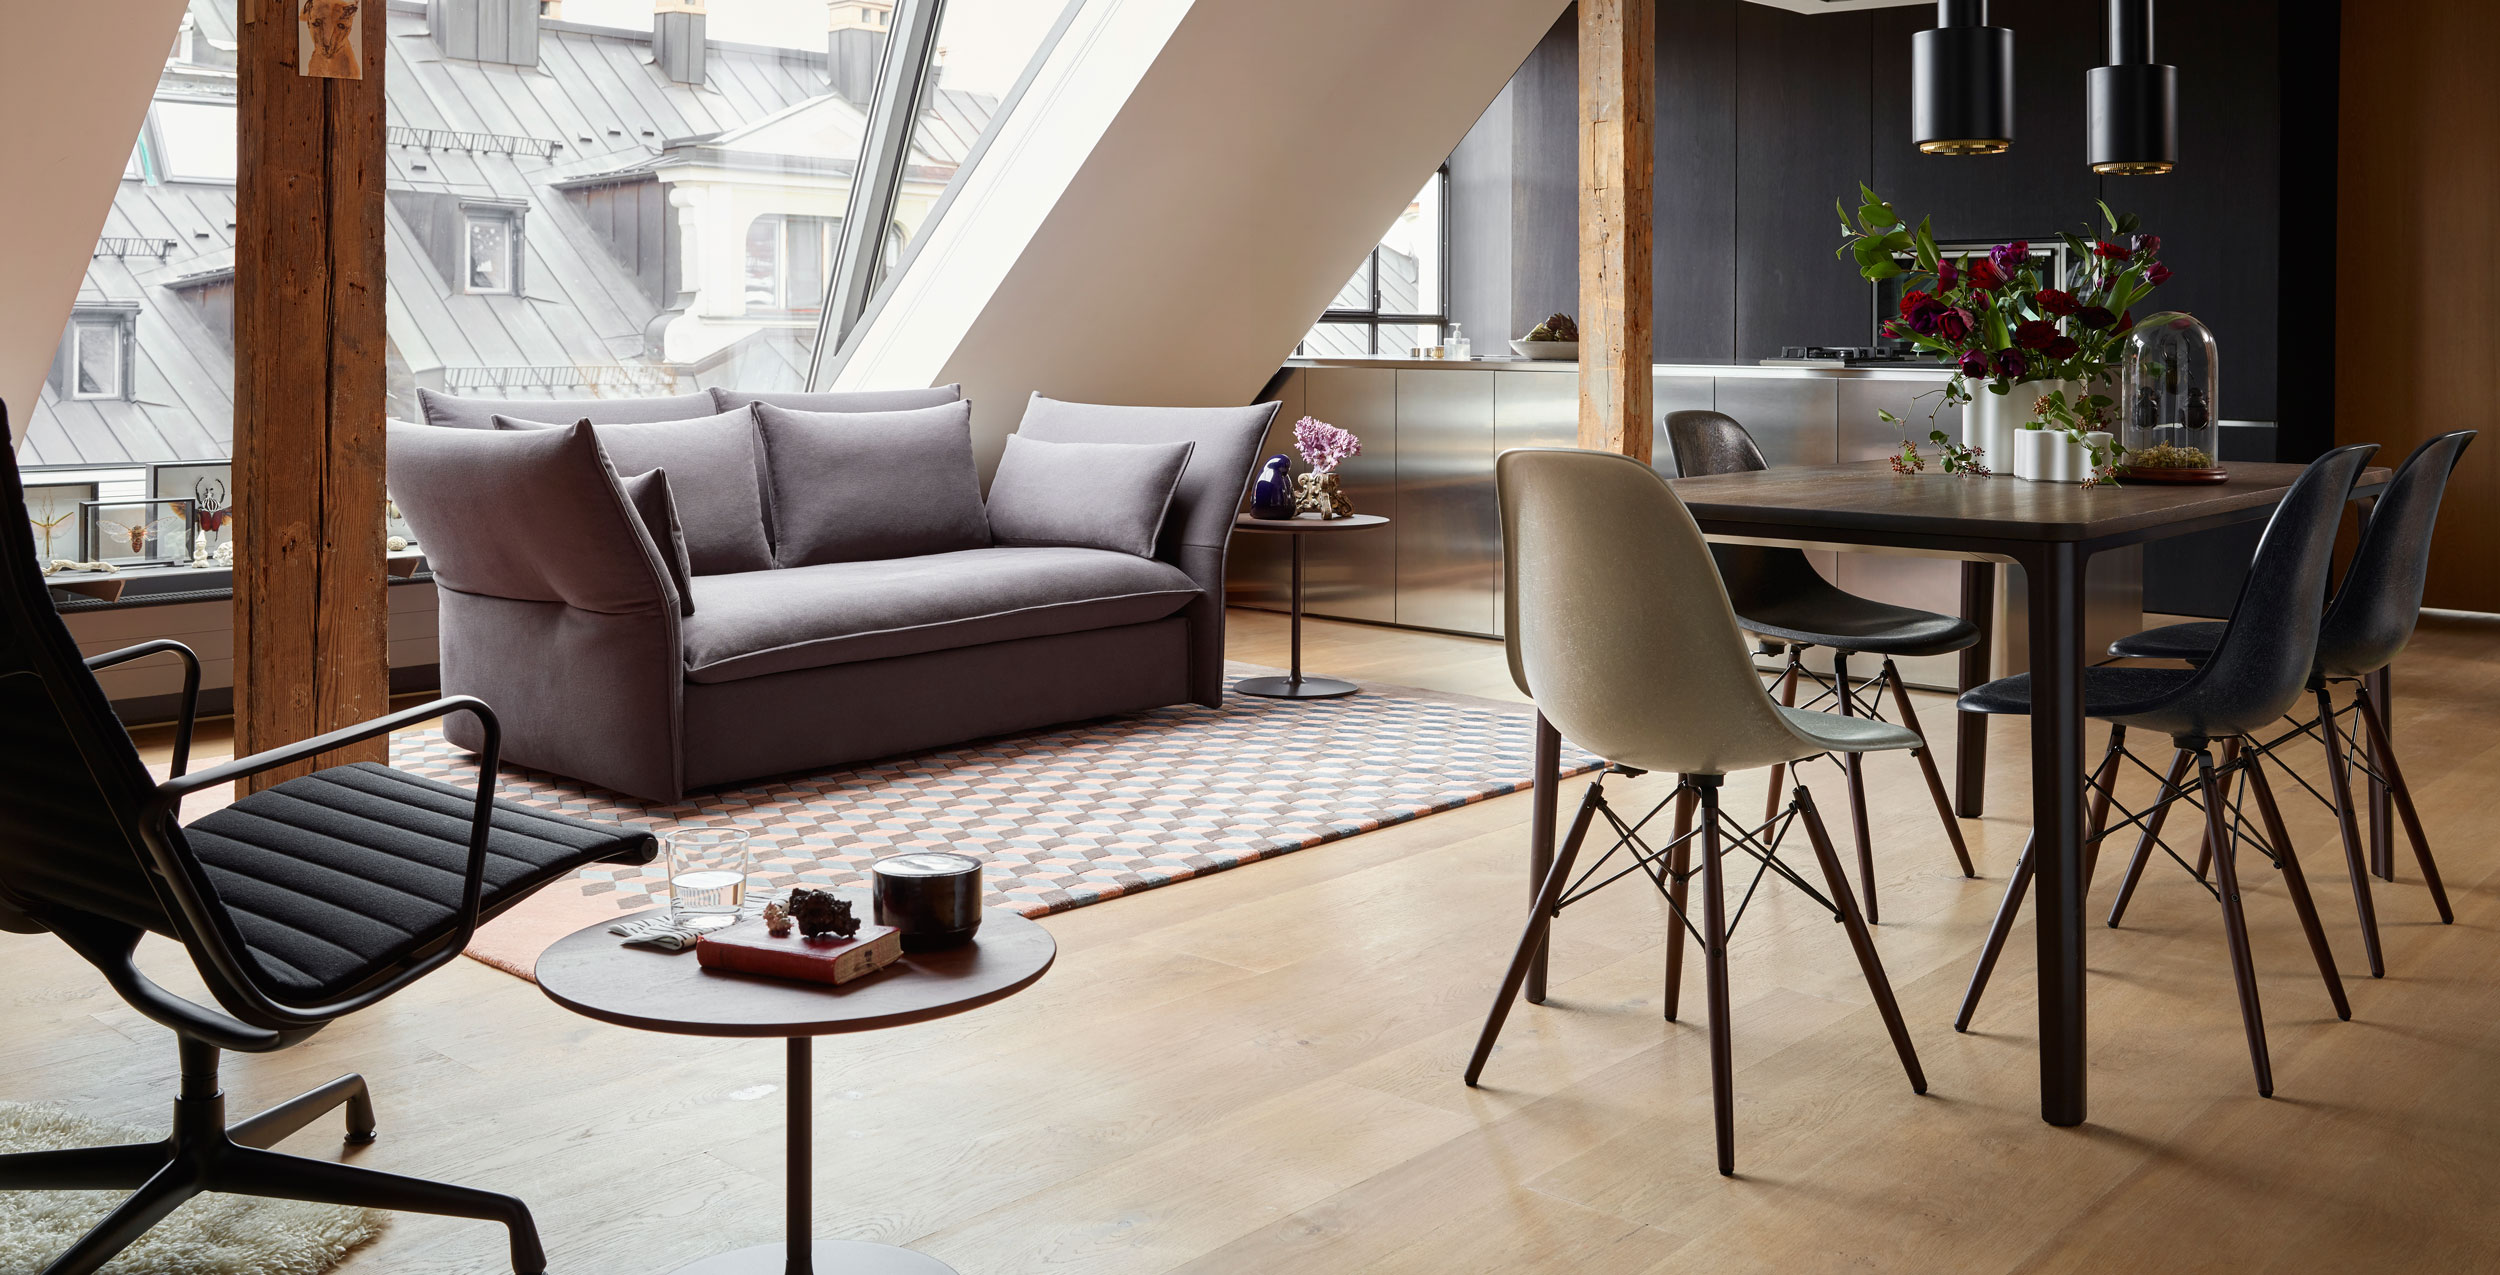 Vitra Eames Fiberglass DSW Chairs with Plate Dining Table Mariposa Sofa and Aluminium Chair EA116